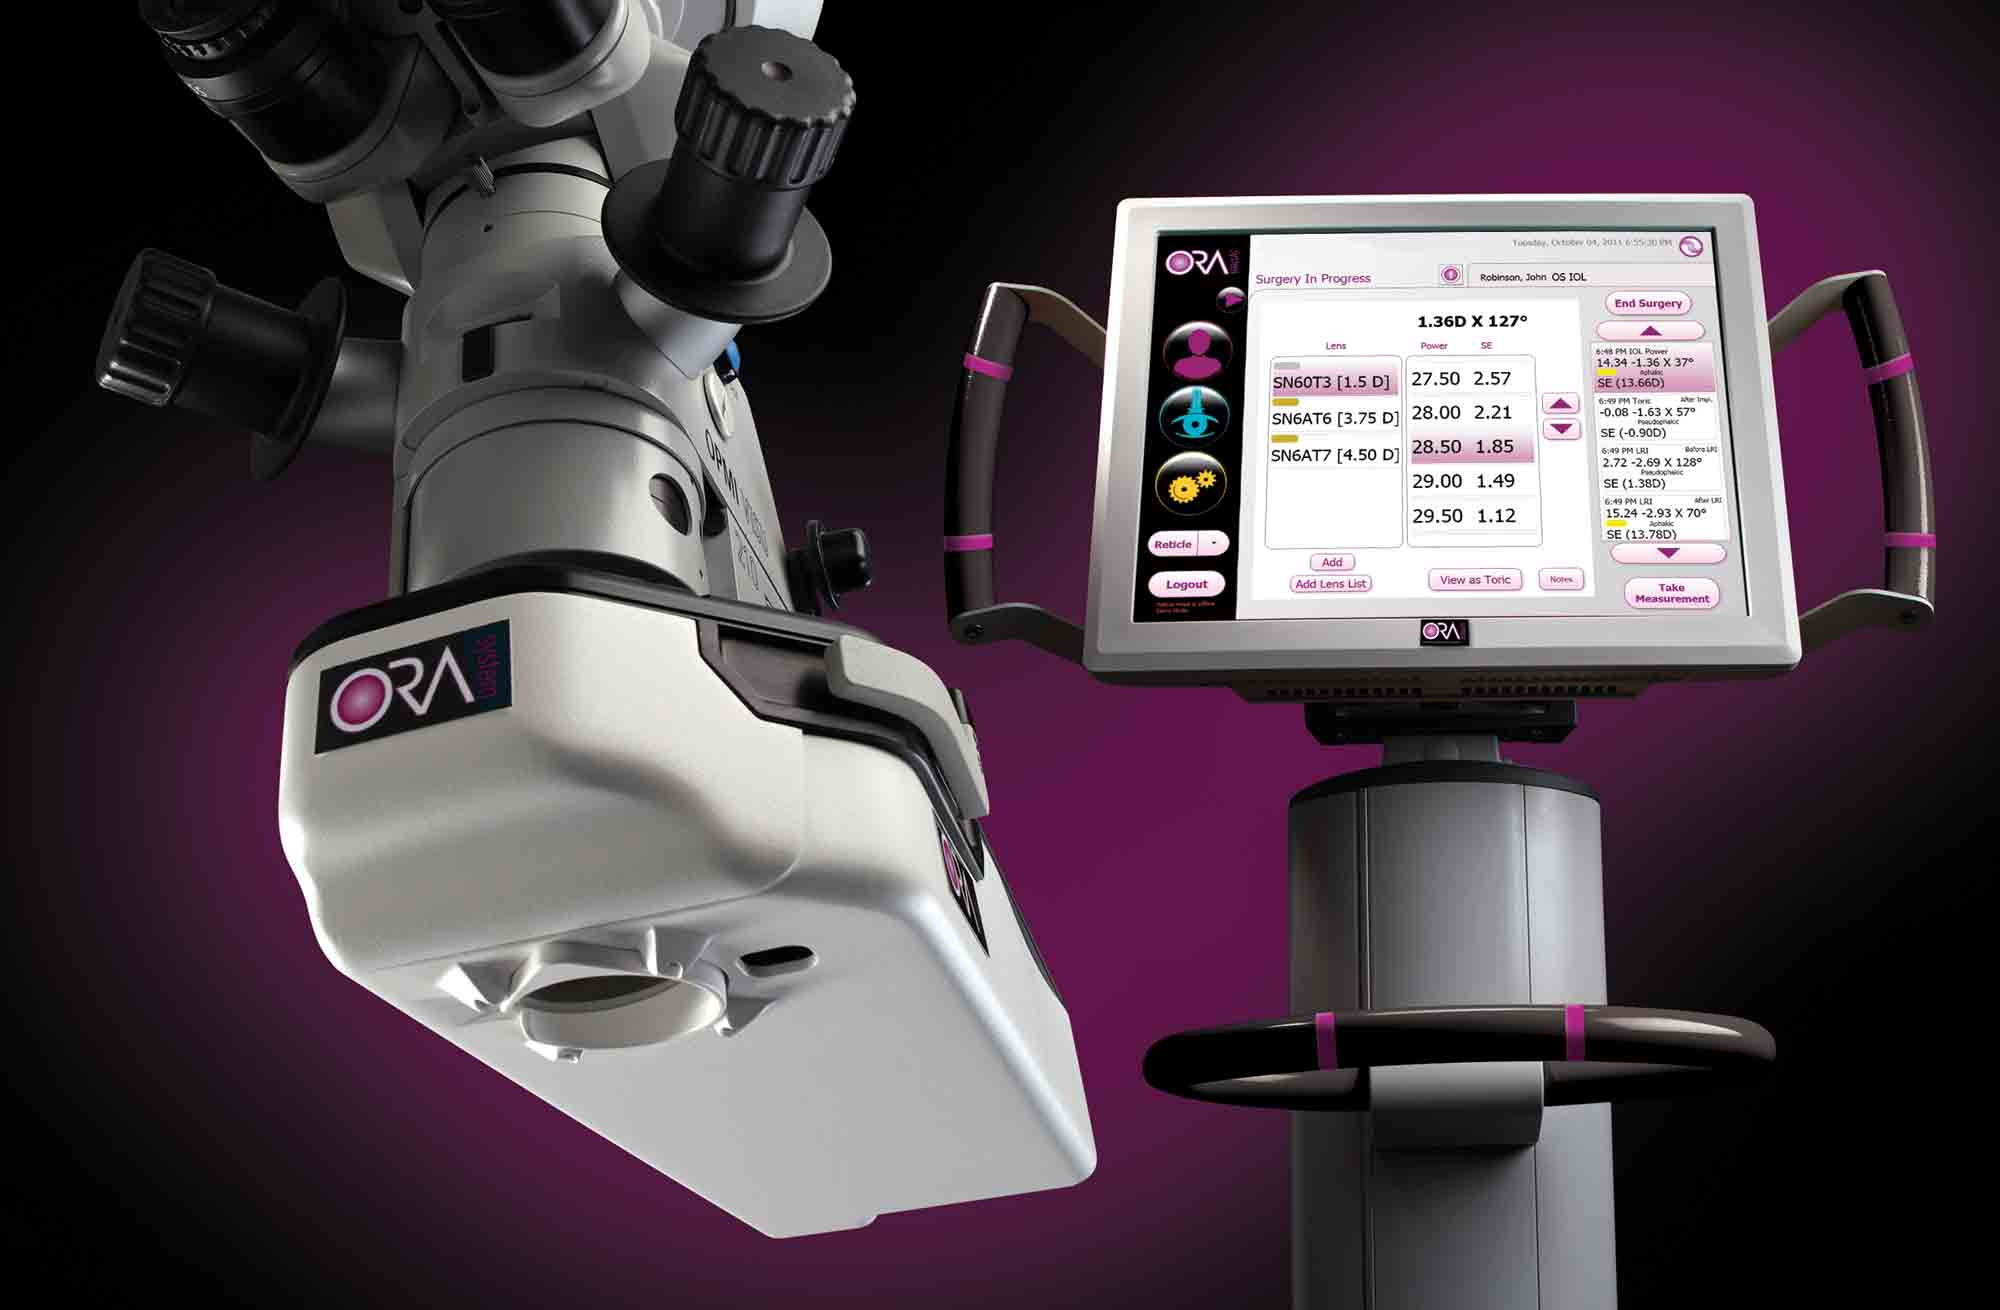 The latest LASIK surgery and eye care technology